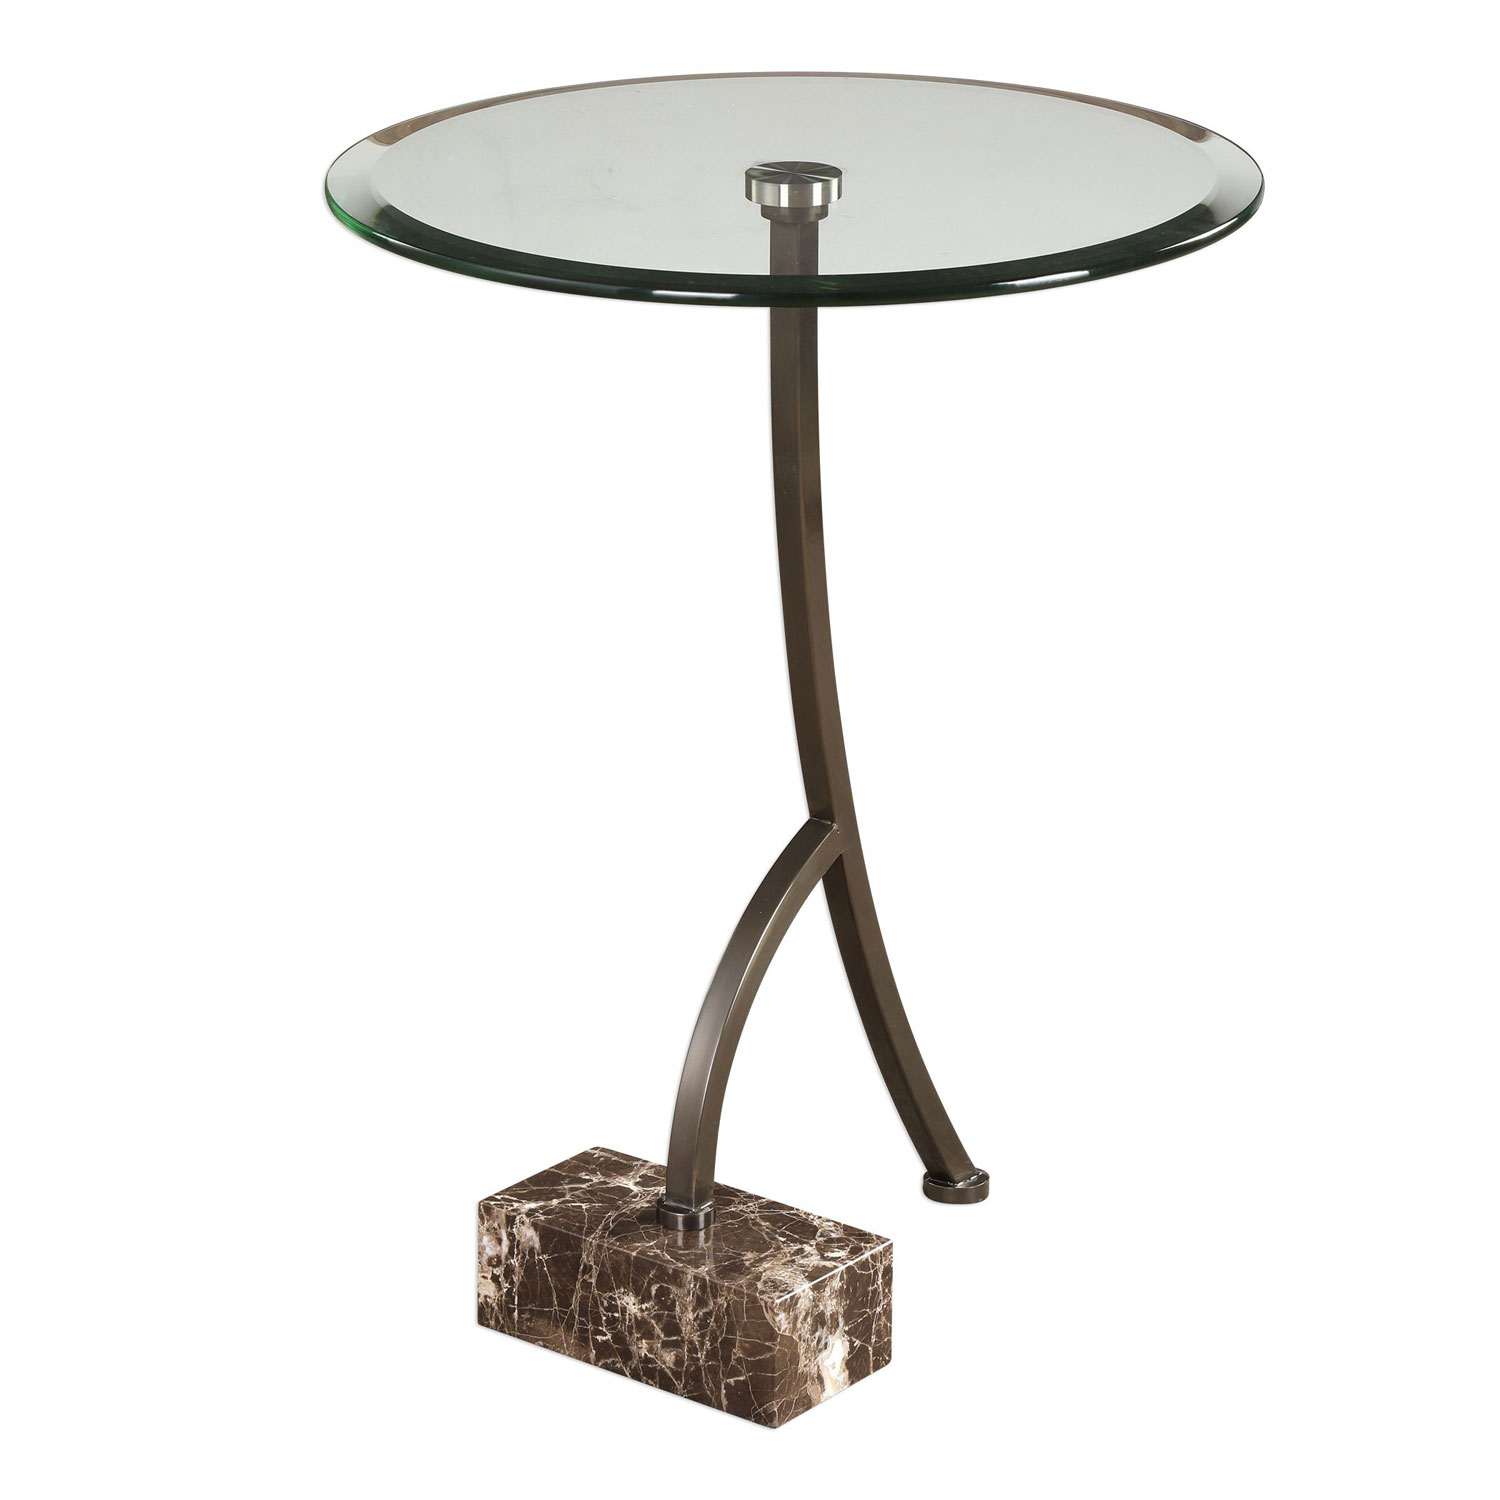 uttermost levi round bronze accent table bellacor pedestal hover zoom yellow umbrella mirror cube nautical themed lamps patio stand target white bedside small metal garden side